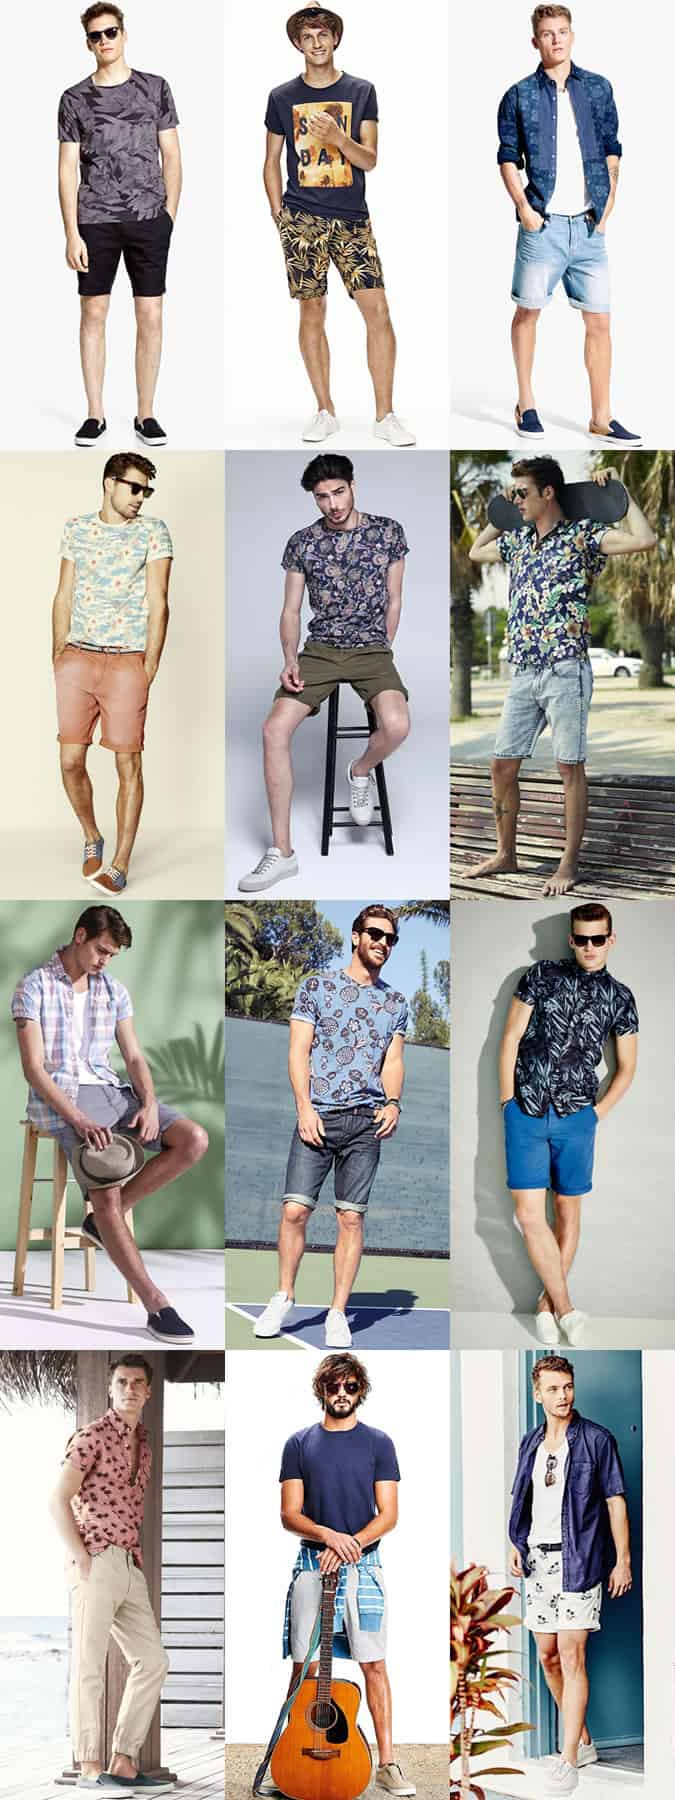 Men's Ibiza Summer Holiday Outfit Inspiration Lookbook